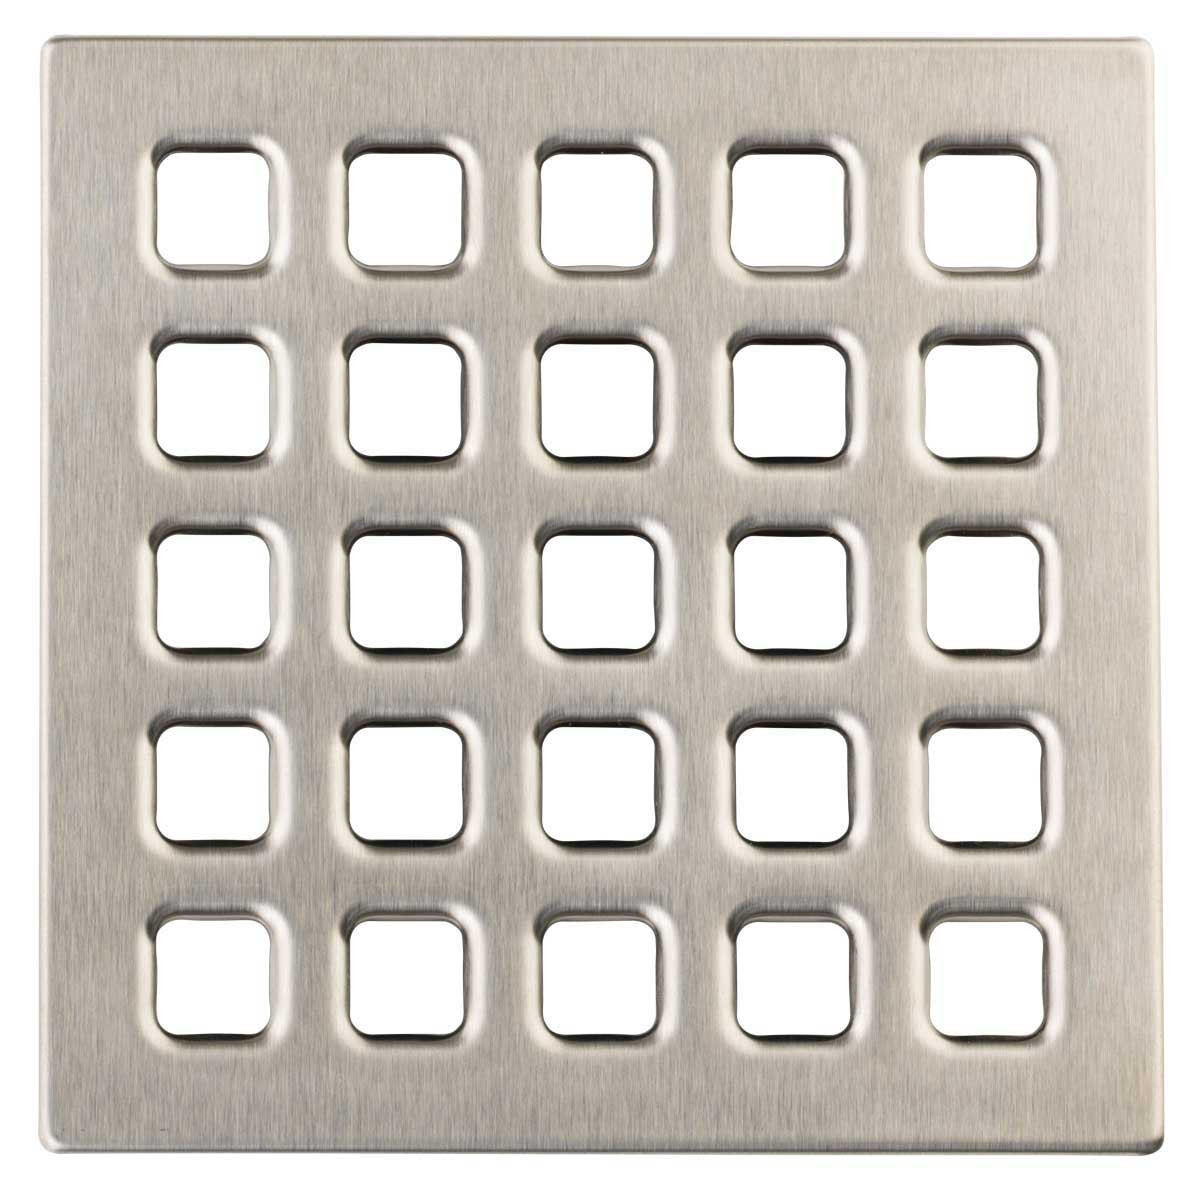 Brushed Nickel Durock Pro Series 4 inch Grate 170154